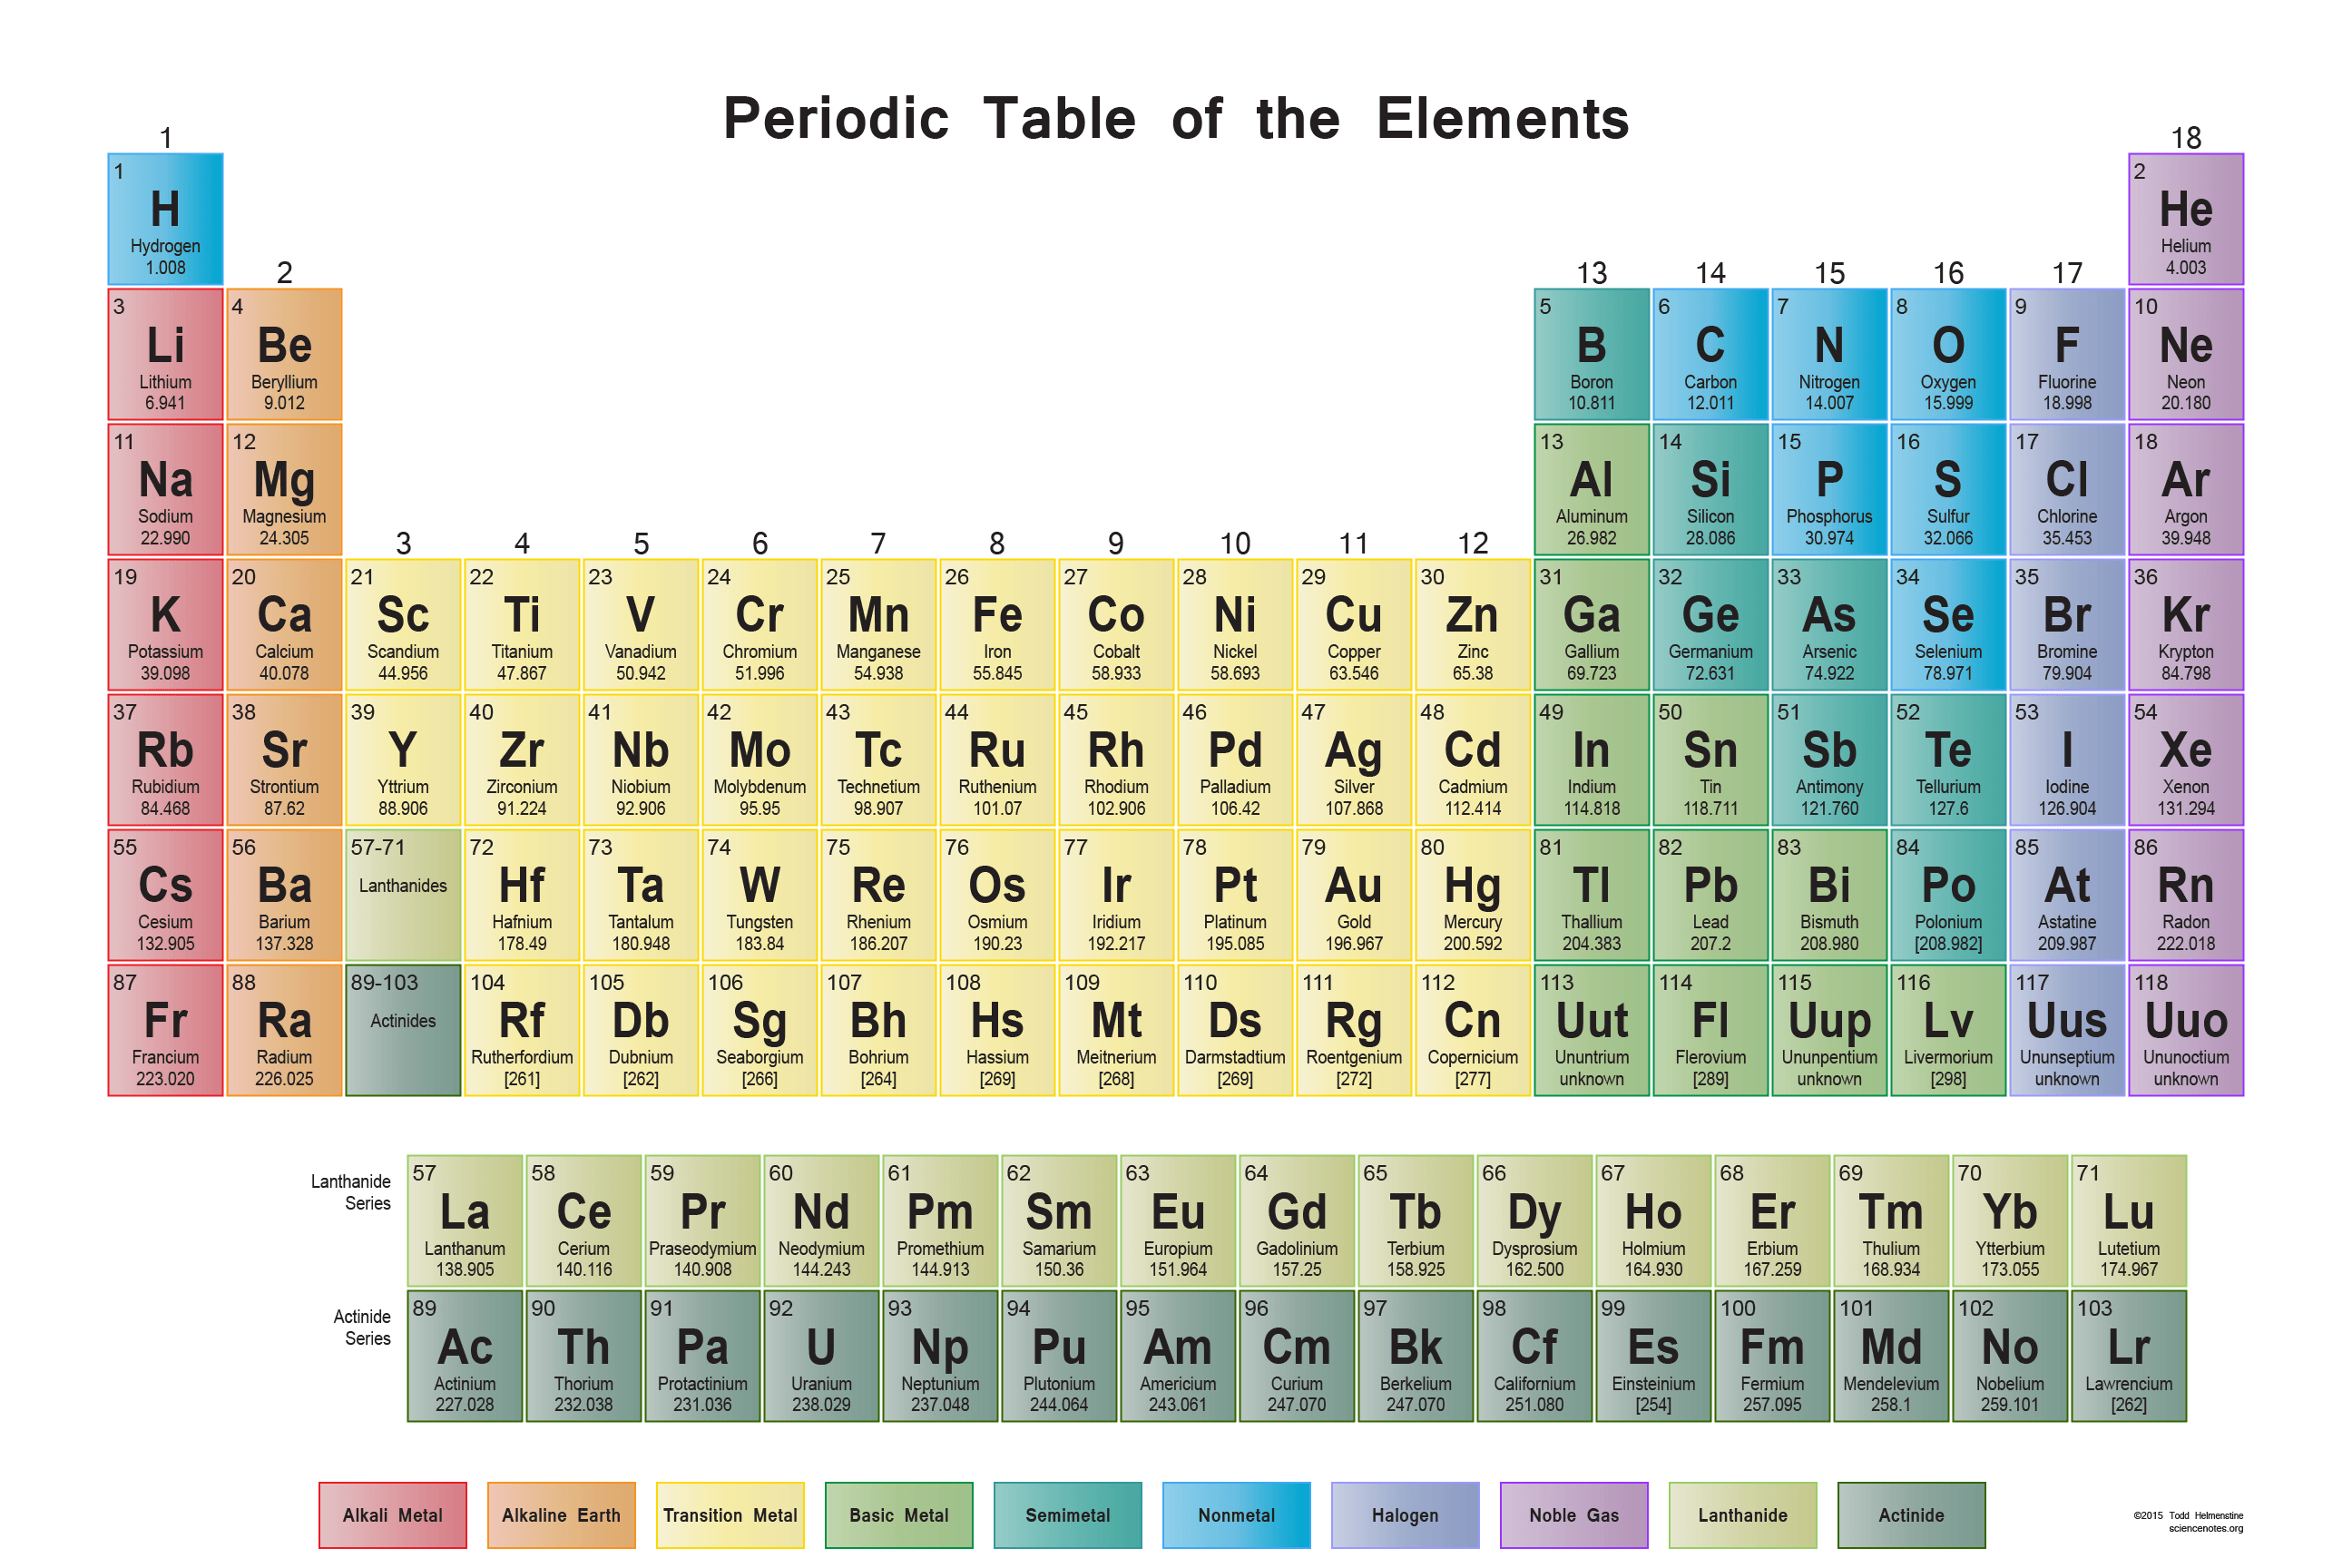 Periodic table wall chart periodictablewallchartg urtaz Image collections